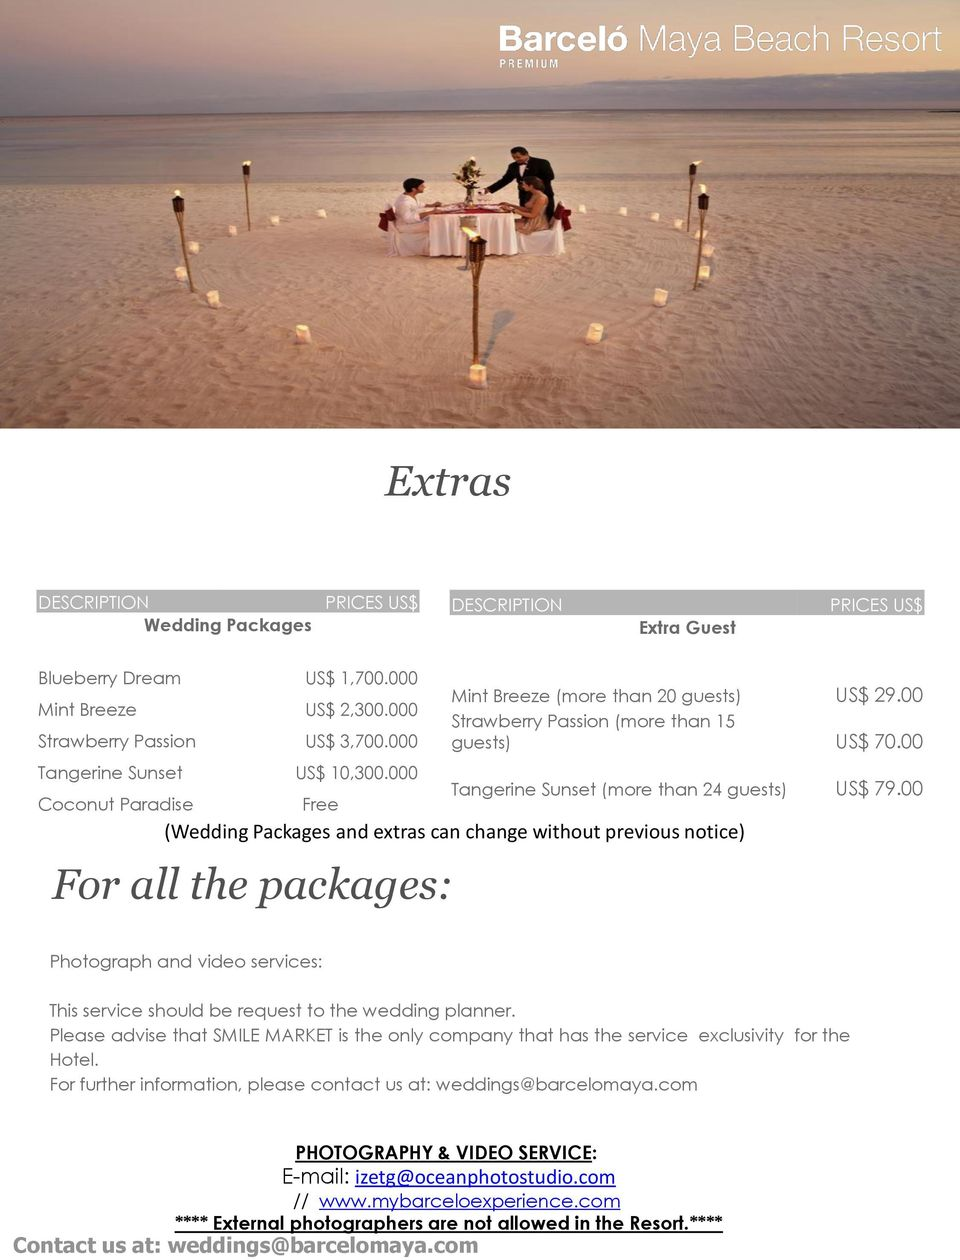 00 (Wedding Packages and extras can change without previous notice) Photograph and video services: This service should be request to the wedding planner.